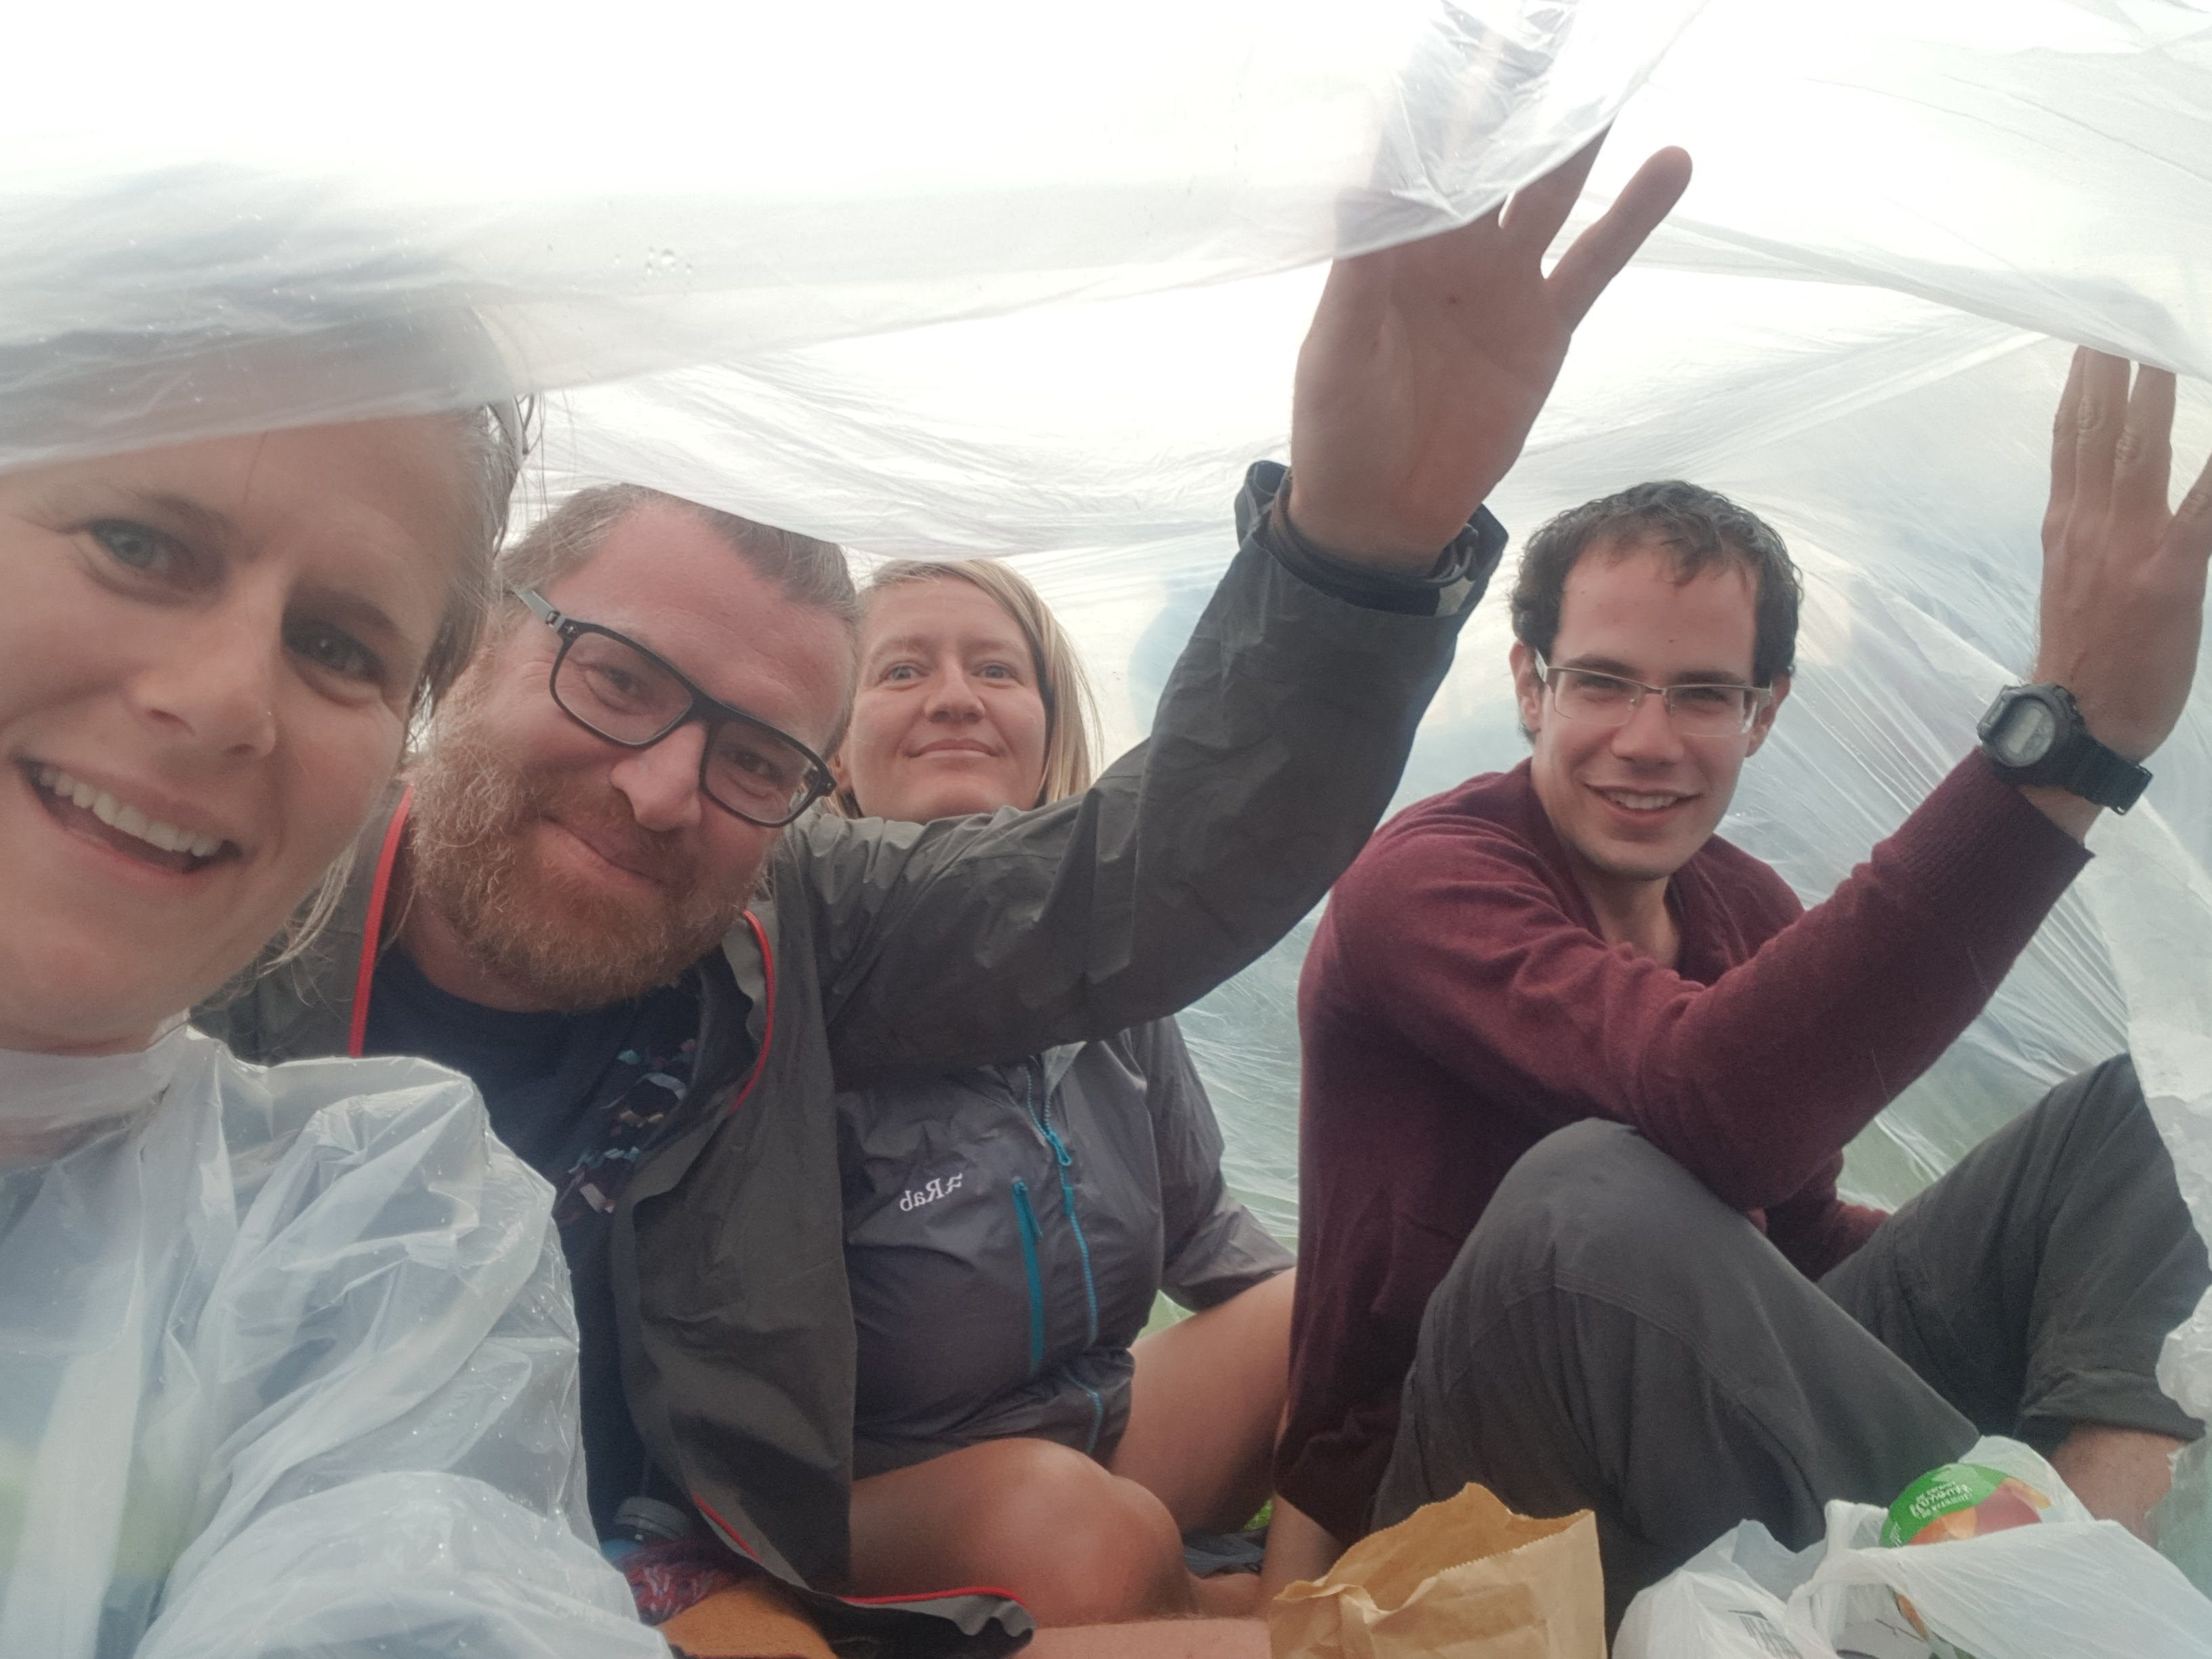 Cold and rainy at the music festival